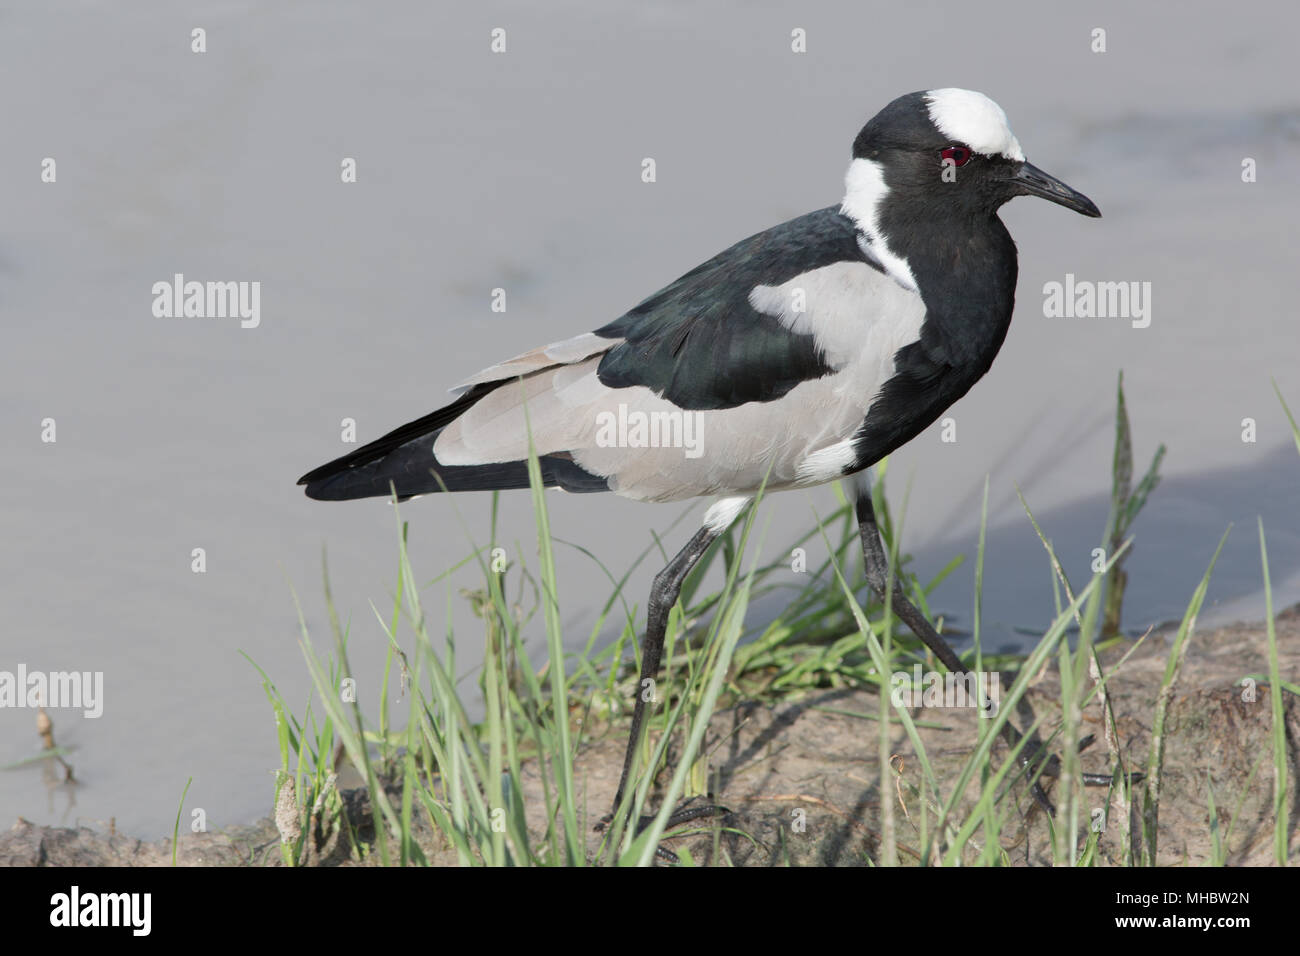 Blacksmith Lapwing or Plover (Vanellus armatus). Okavango, Botswana. East and central Africa. - Stock Image